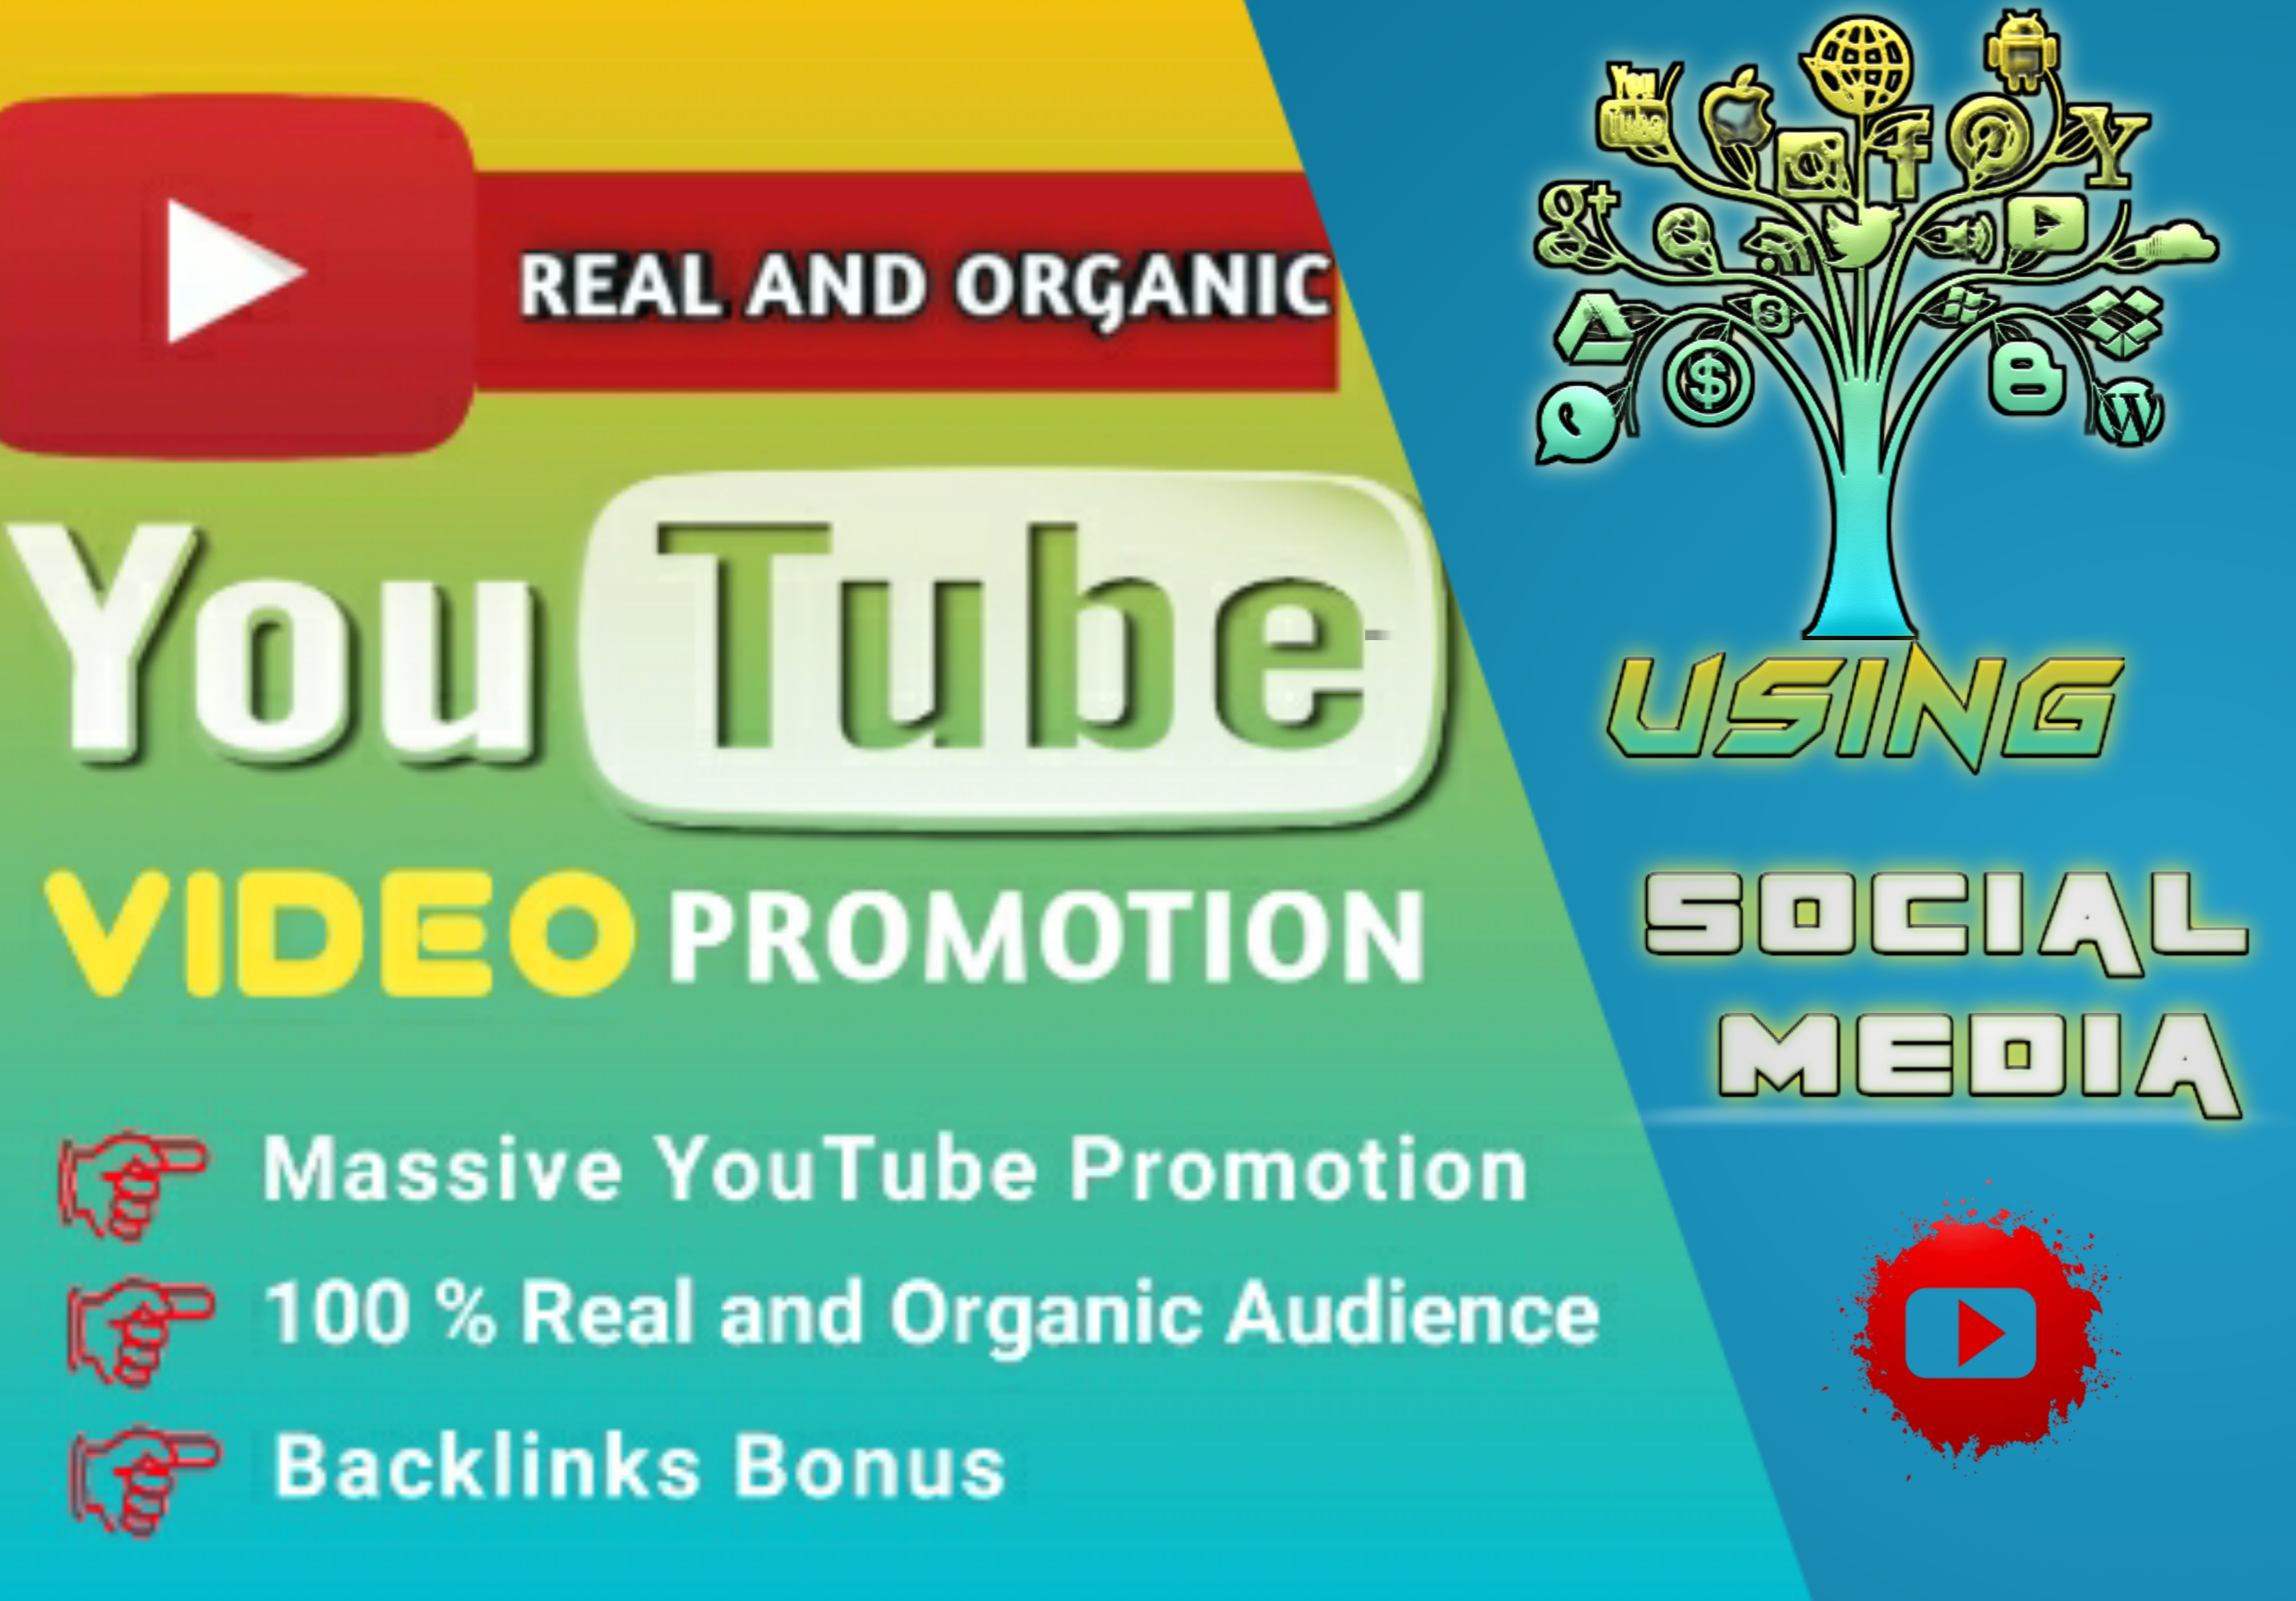 Organic YouTube video promotion using social media plus bonus backlinks